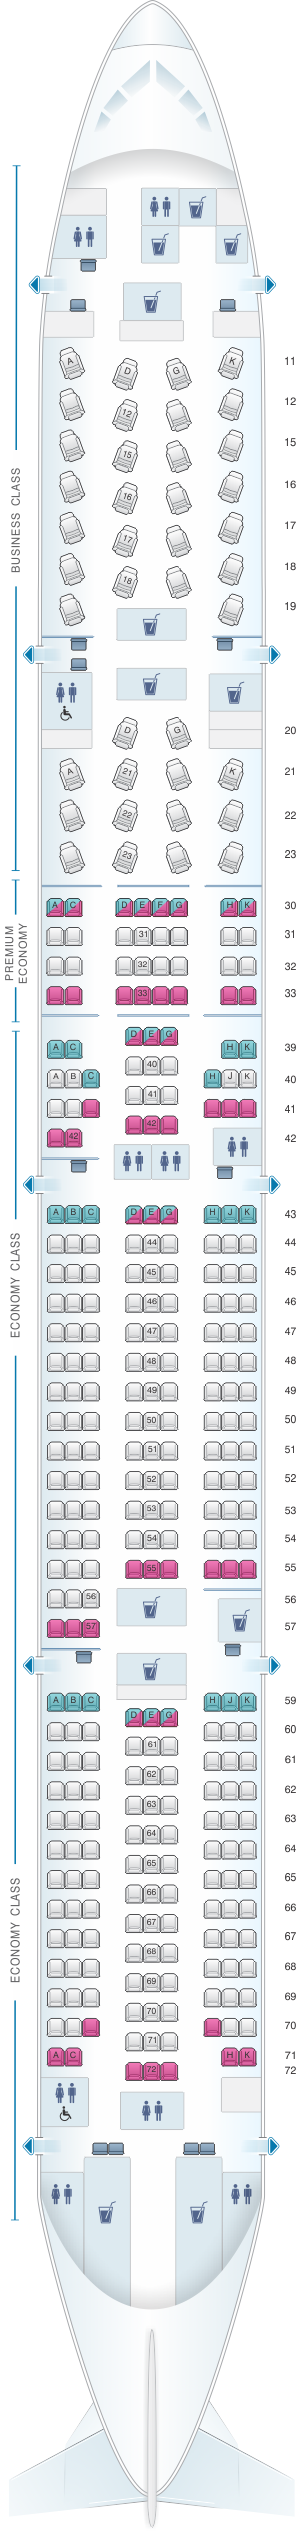 cathay pacific cx837 seat map Seat Map Cathay Pacific Airways Boeing B777 300 77g Seatmaestro cathay pacific cx837 seat map